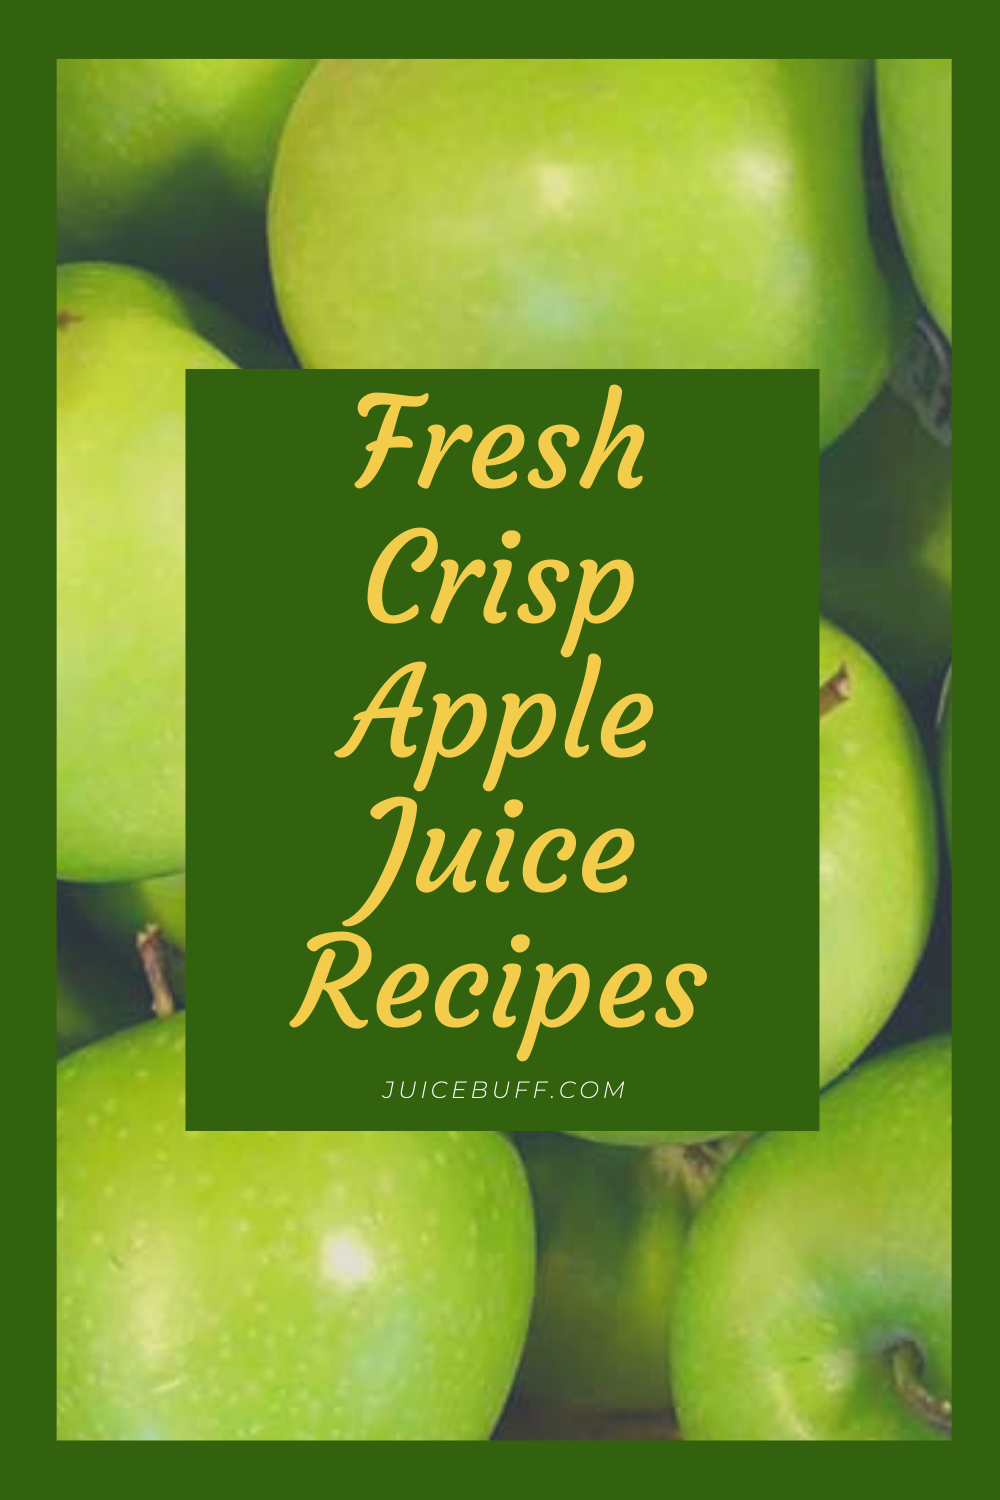 3 Apple Juice Recipes How To Make It With A Juicer A Blender Or A Pot Apple Juice Recipe Juicing Recipes Apple Juice Benefits